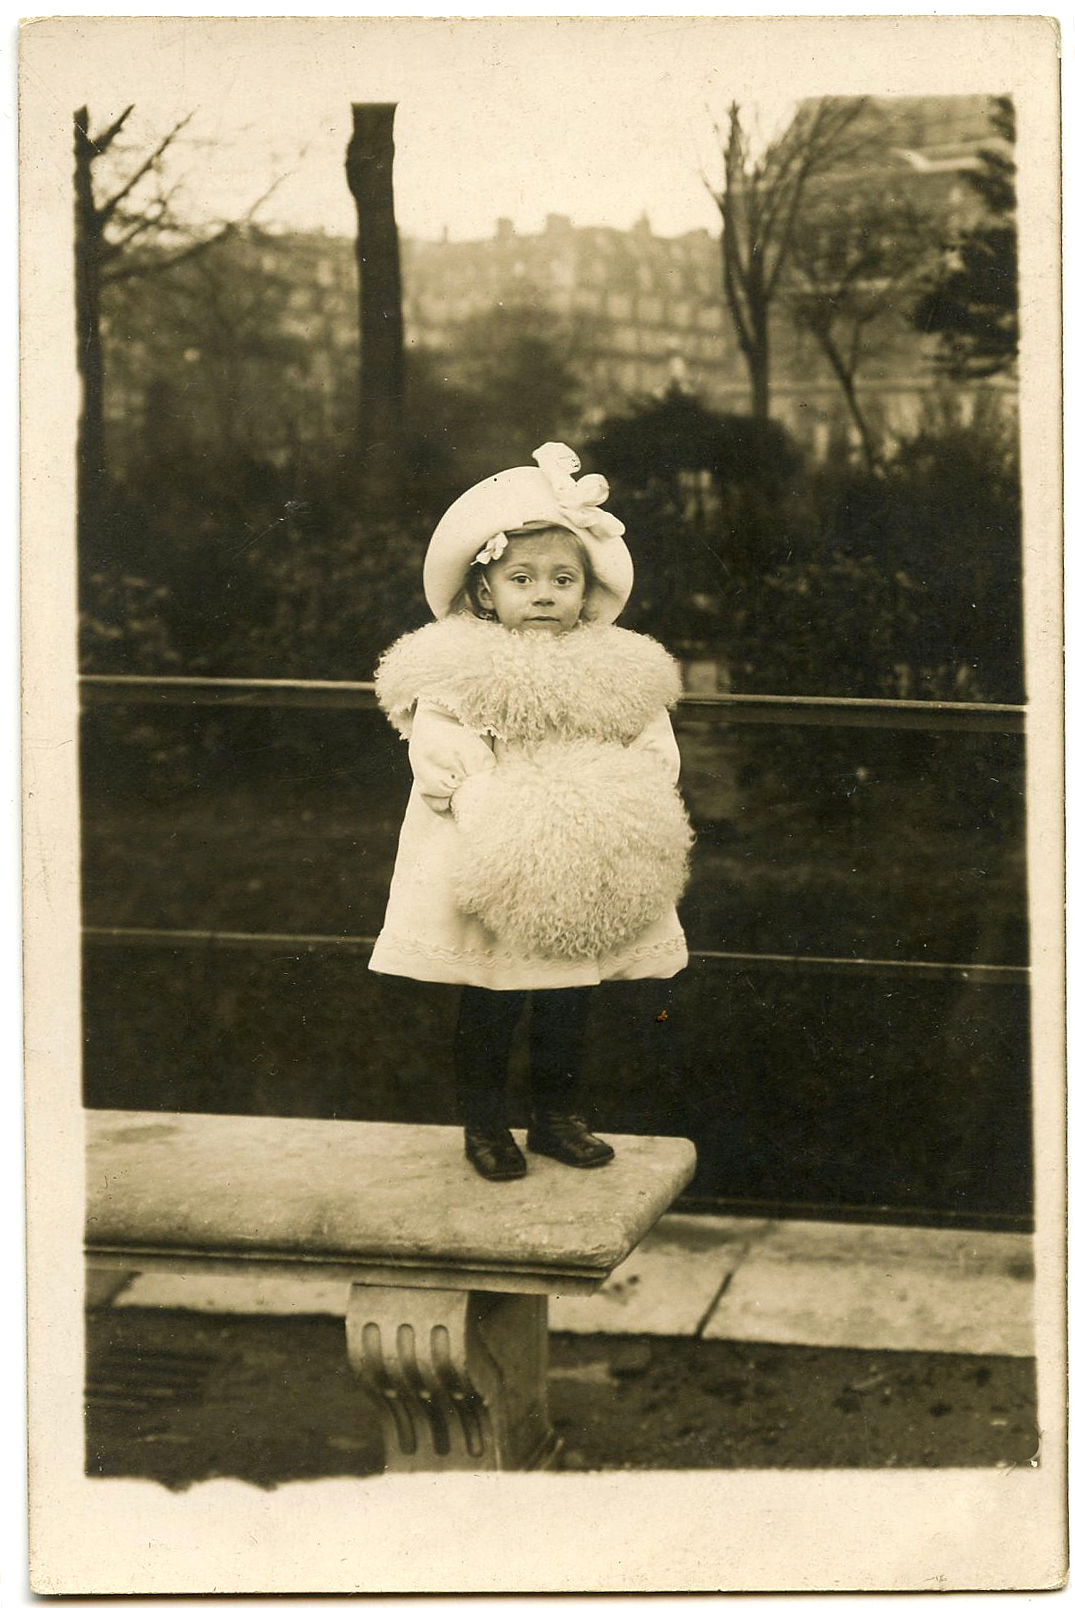 This tiny little Girl is all bundled up for Winter in her fancy Fur Coat,  Muff, and big Hat. So sweet! The original photo is at the bottom.